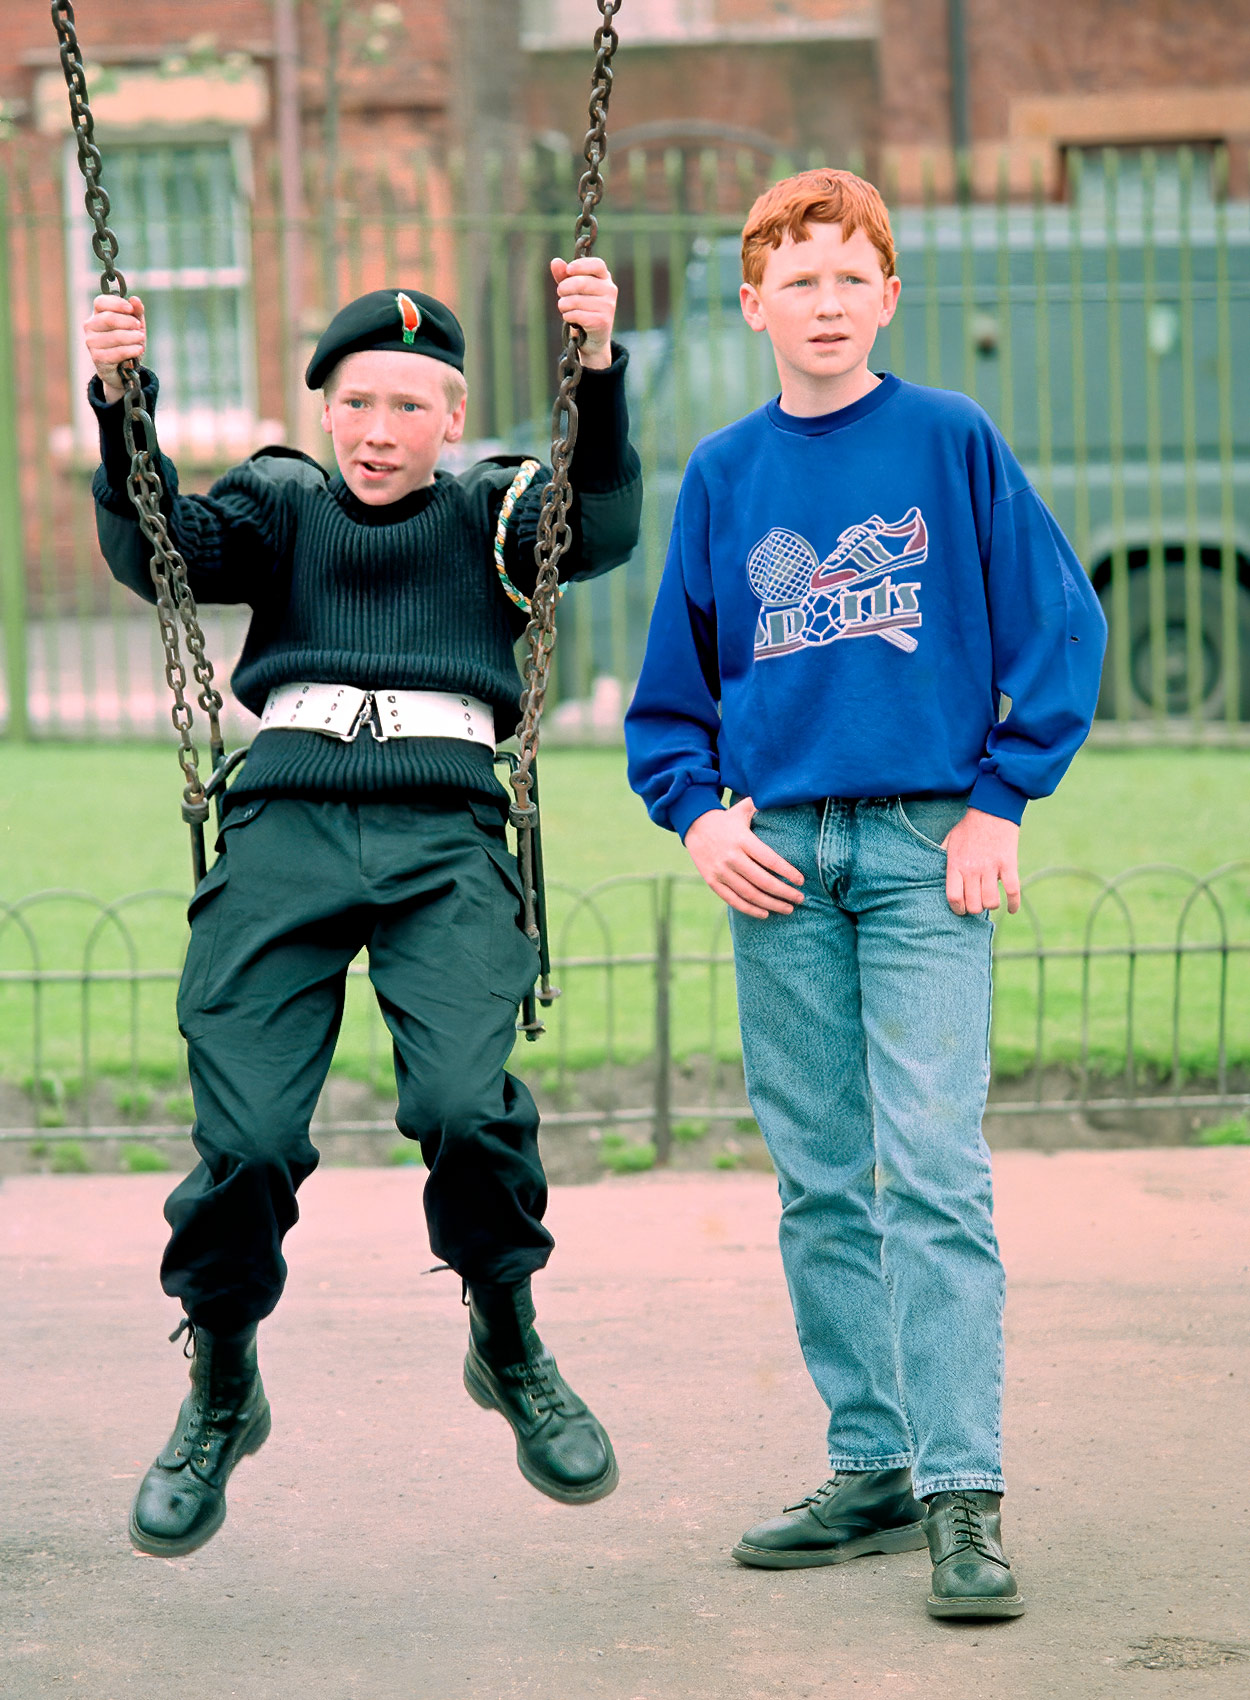 a-catholic-boy-swings-in-a-playground-in-catholic-west-belfast-as-his-friend-stands-by-his-side